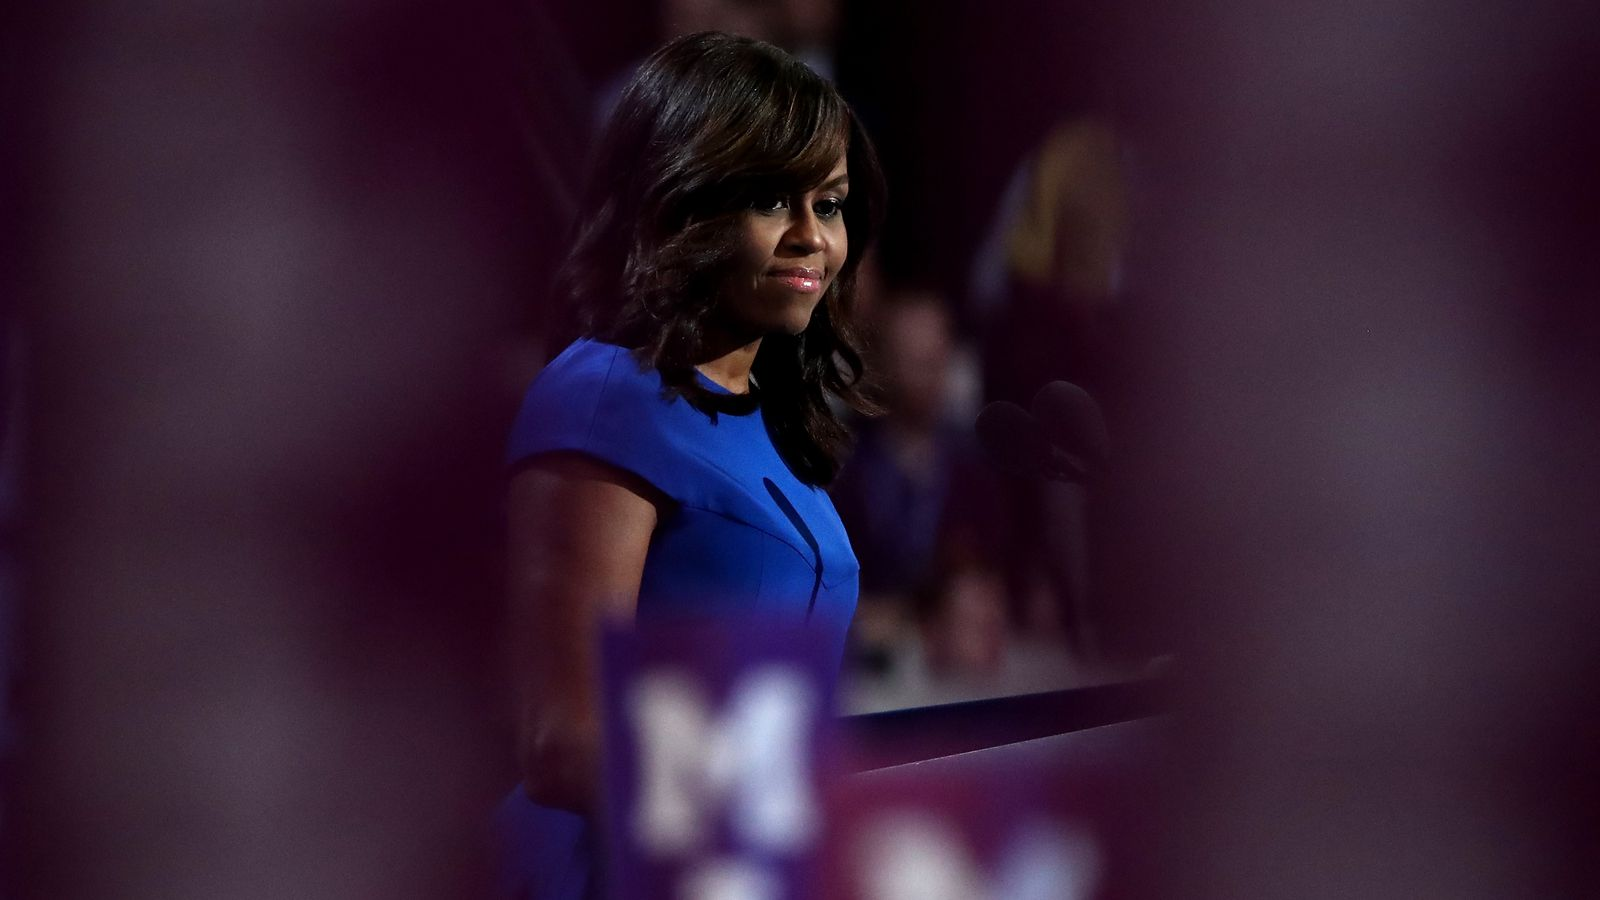 michelle lavaughn robinson thesis The radical racist background of michelle michelle obama's maiden name was michelle lavaughn robinson download michelle obama four of.